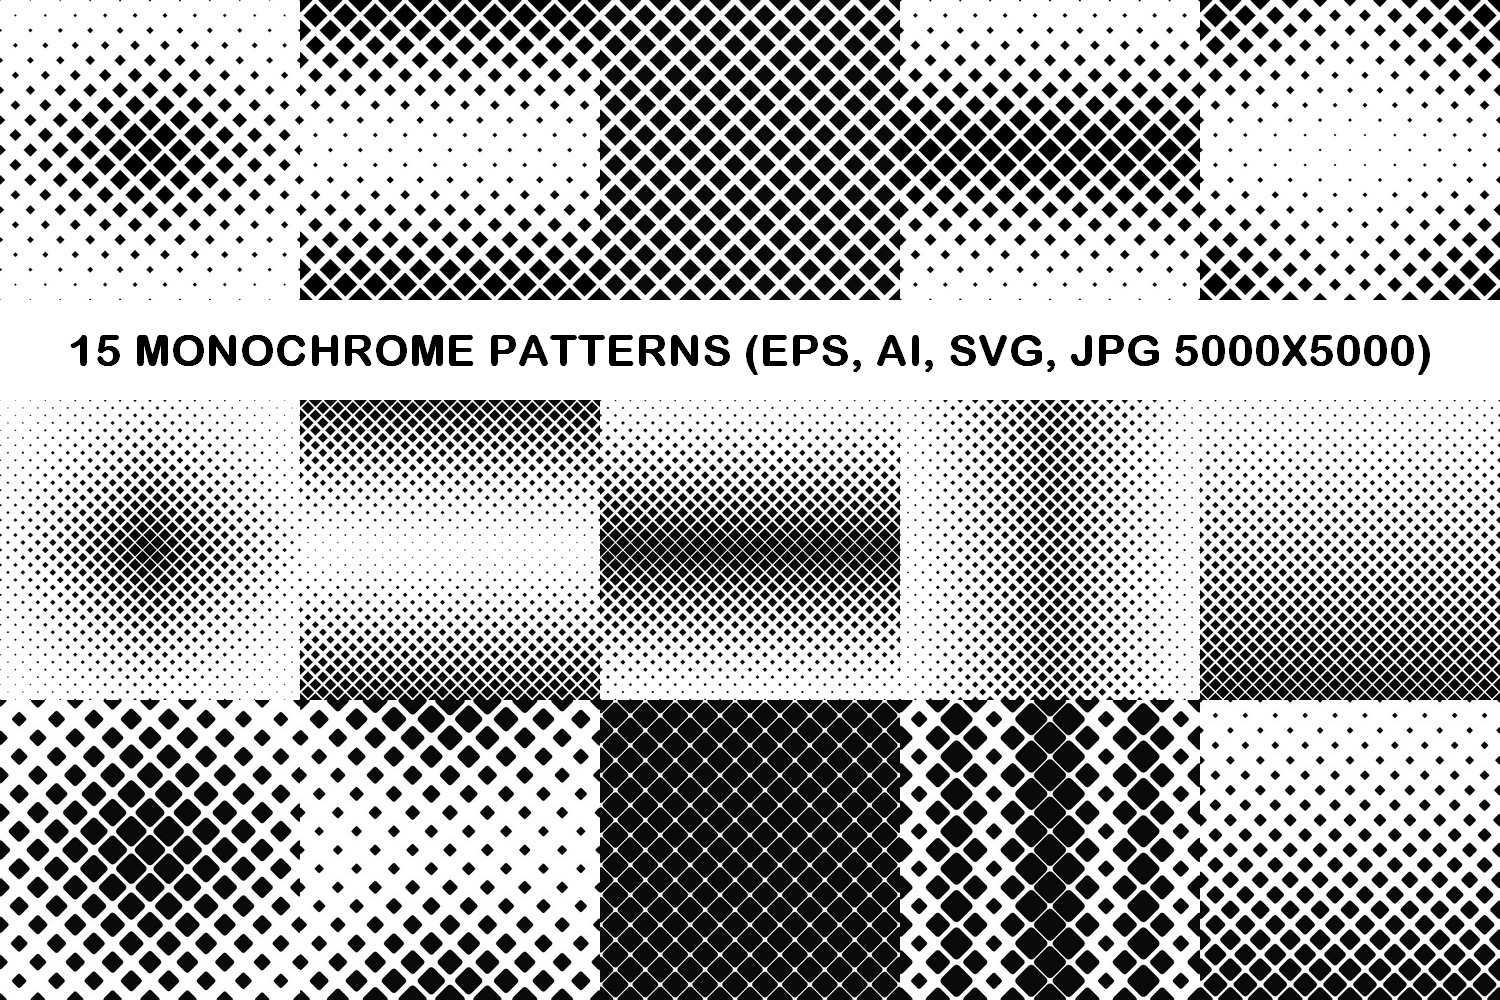 75 Monochrome Geometrical Patterns AI, EPS, JPG 5000x5000 example image 3